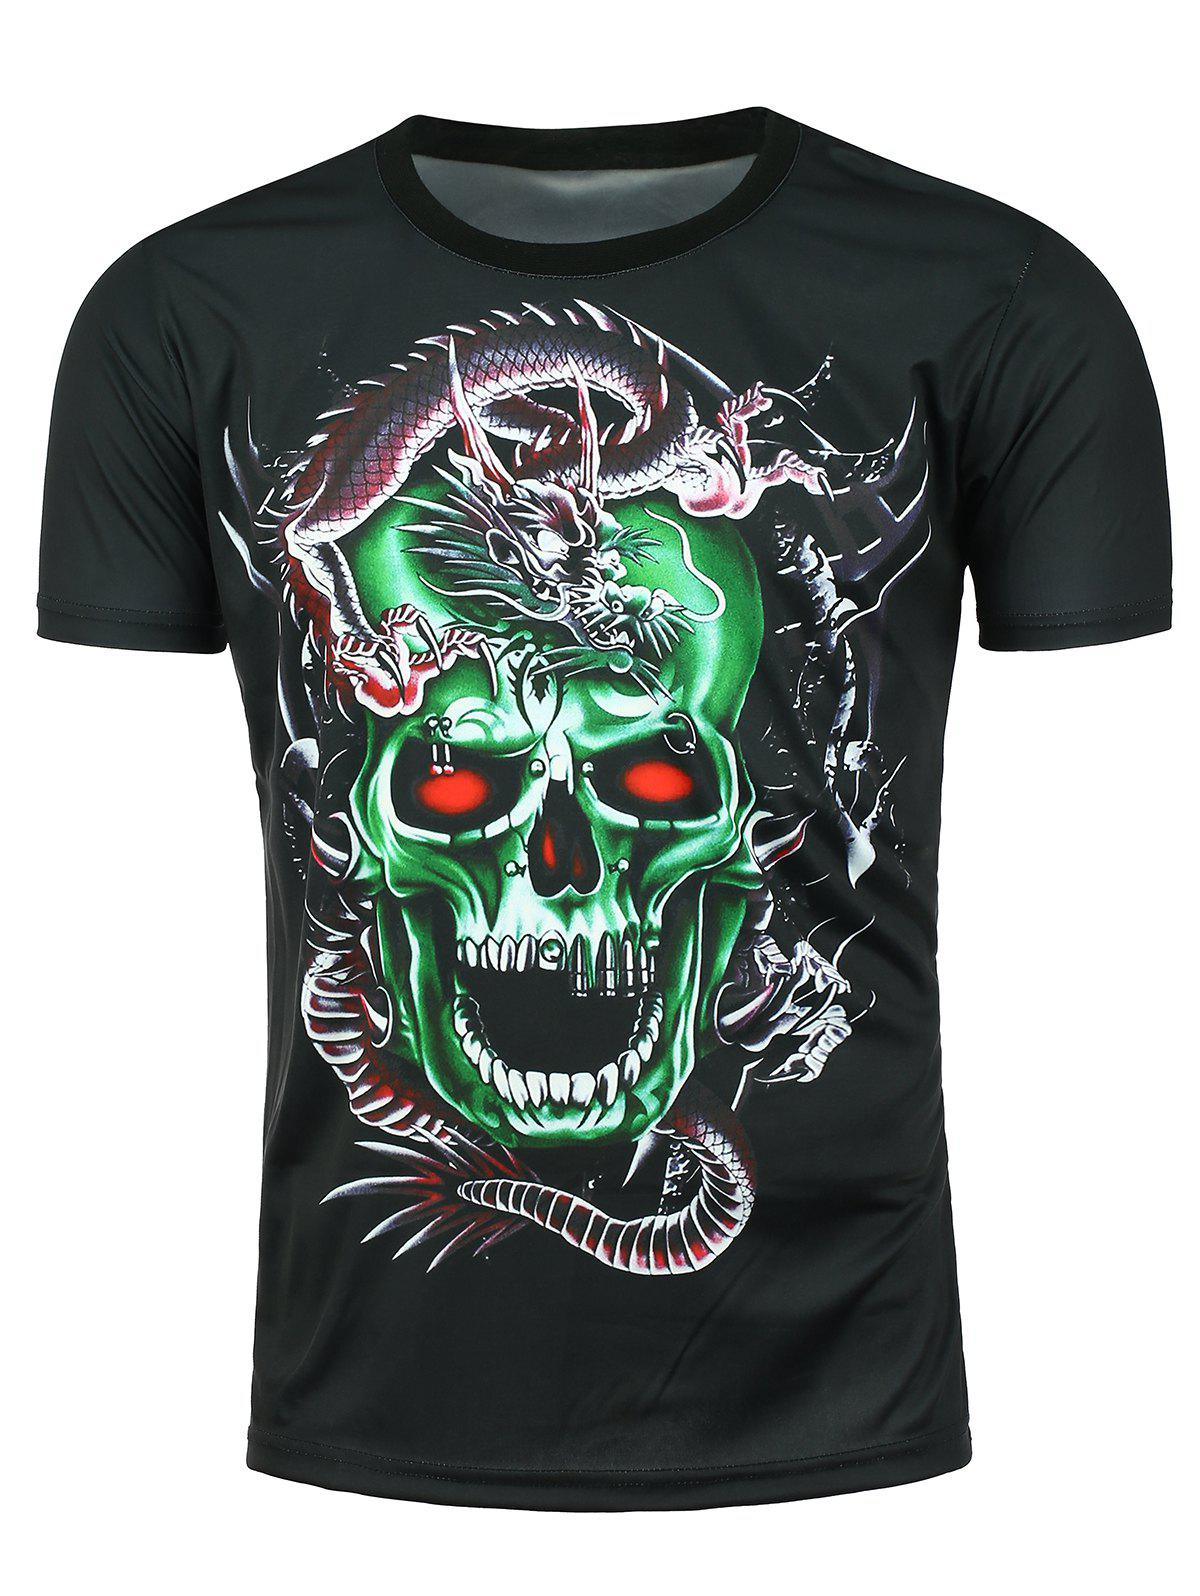 3D Dragon Skull Printed Crew Neck T-shirtMEN<br><br>Size: 2XL; Color: BLACK; Style: Fashion; Material: Polyester; Sleeve Length: Short; Collar: Crew Neck; Pattern Type: Skulls; Weight: 0.1870kg; Package Contents: 1 x T-shirt;